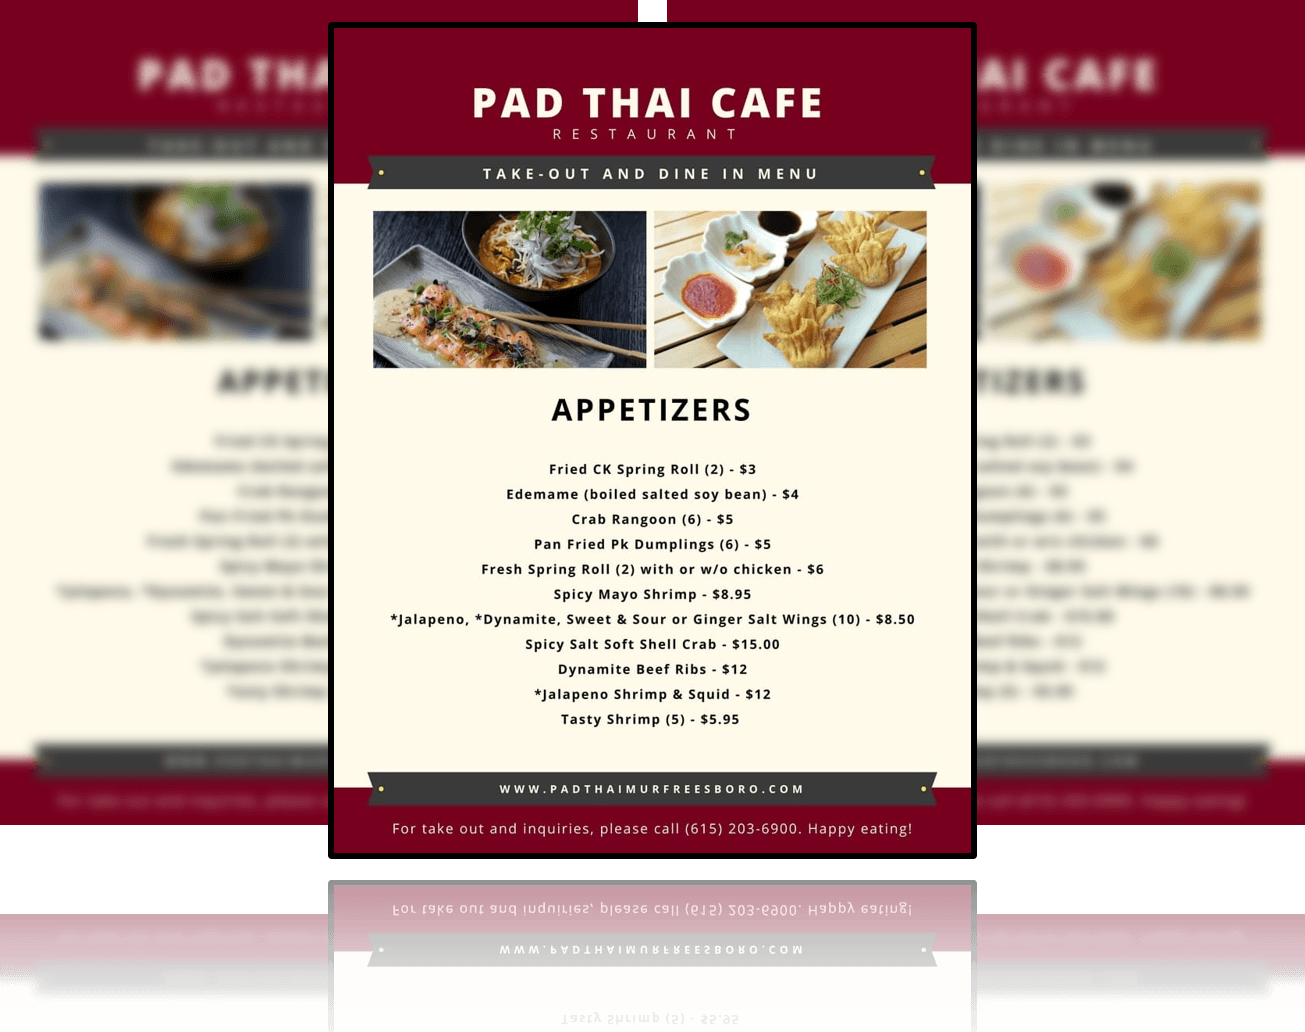 Pad Thai Cafe   The Best Food In Murfreesboro!